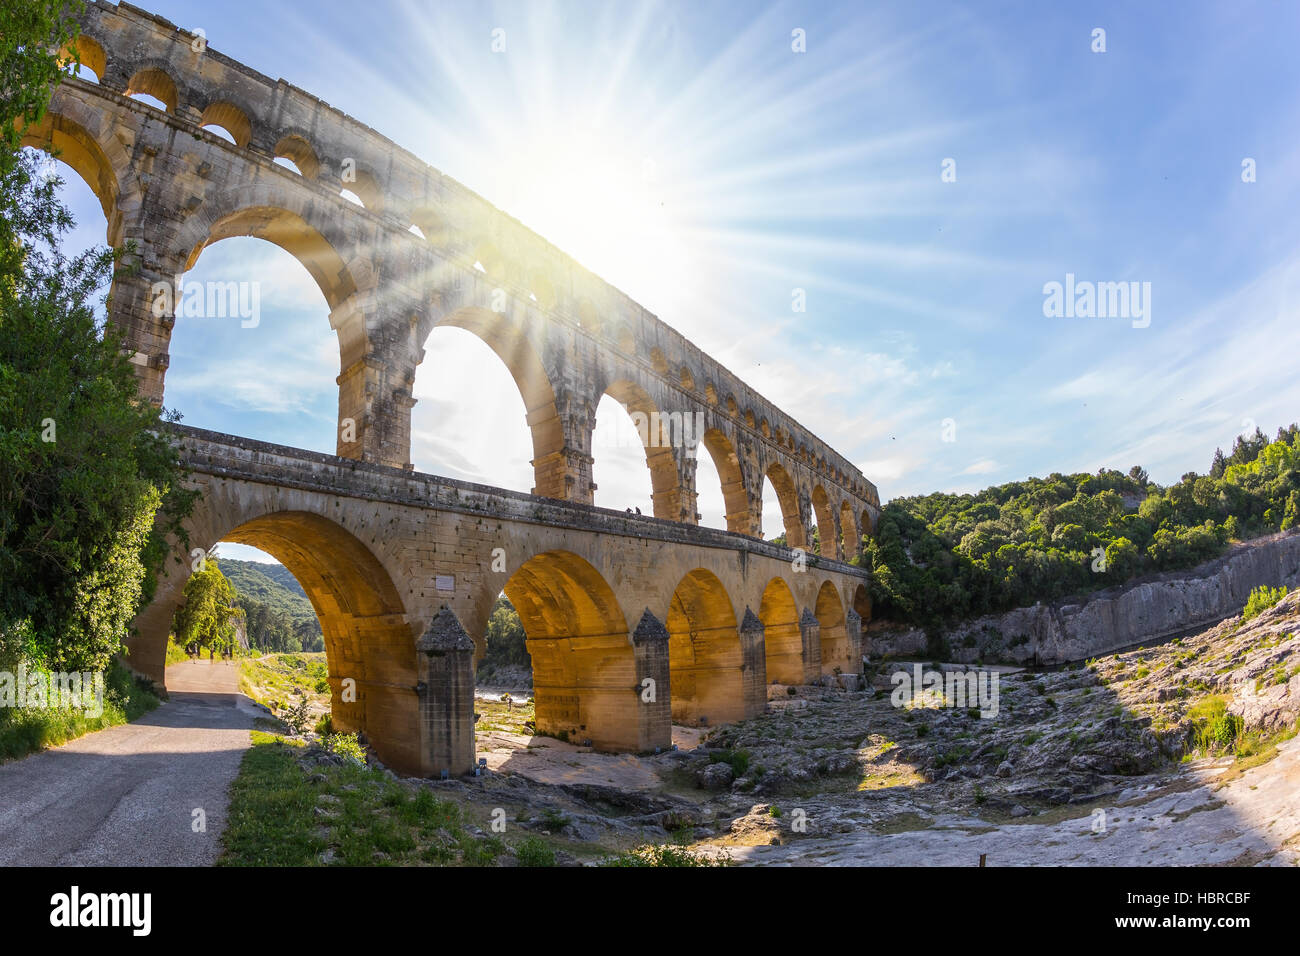 The setting sun shines in the sky - Stock Image